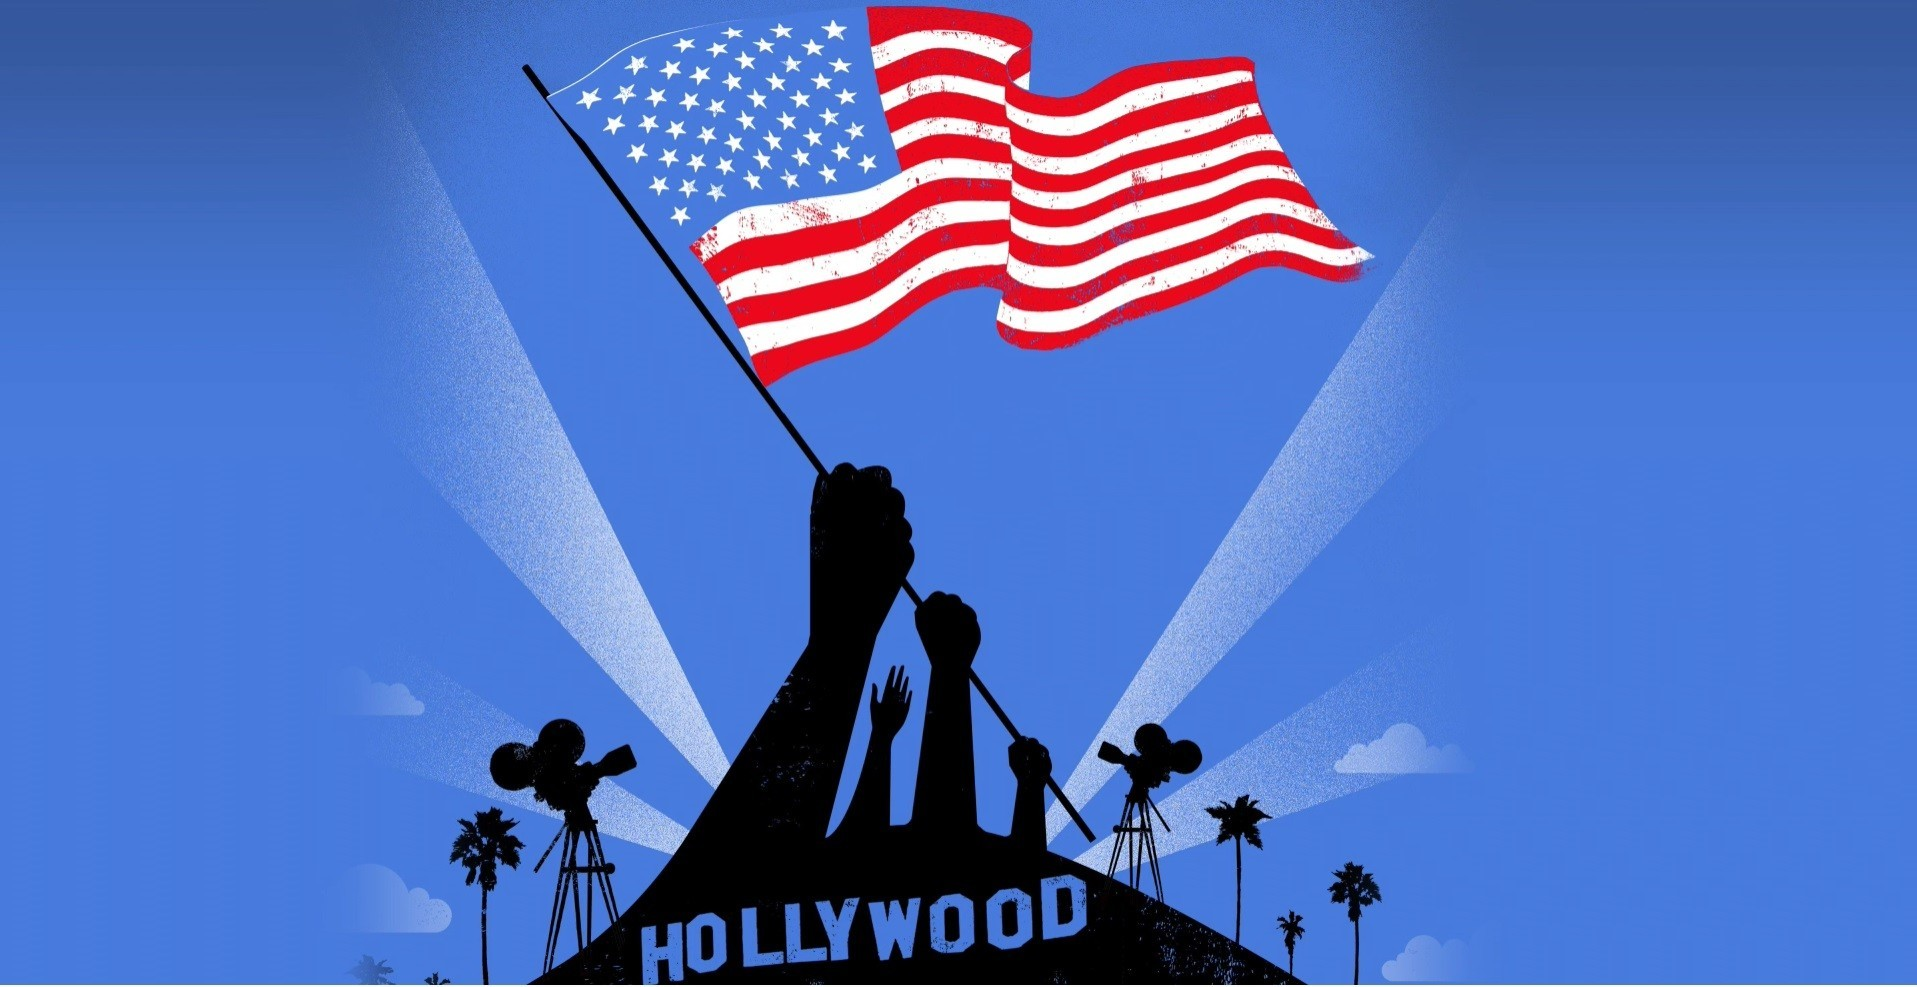 Has Hollywood lost touch with American values? - LA Times